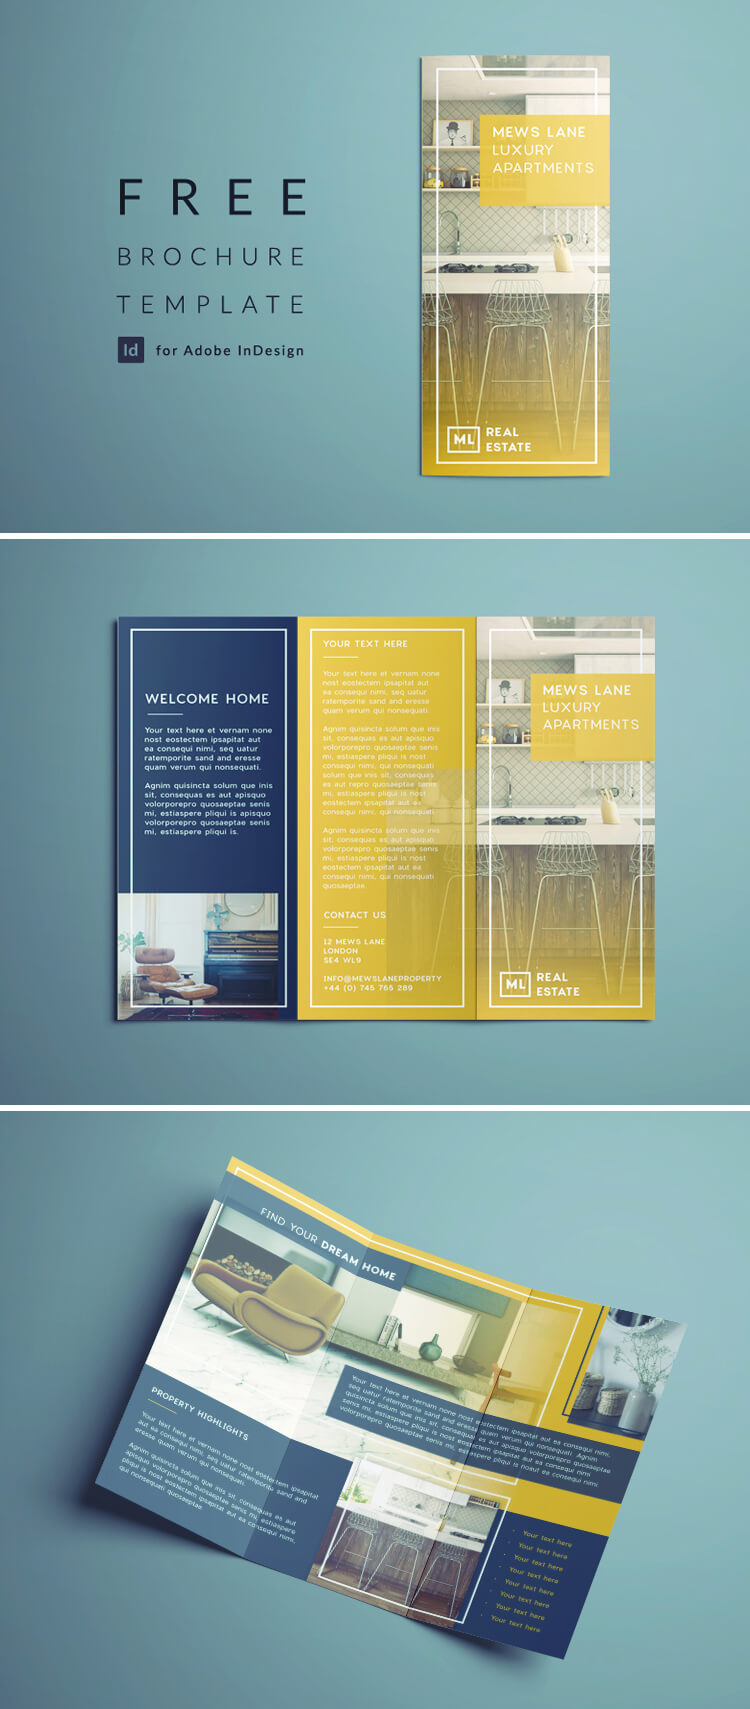 Tri fold brochure free indesign template for Brochure templates free download indesign